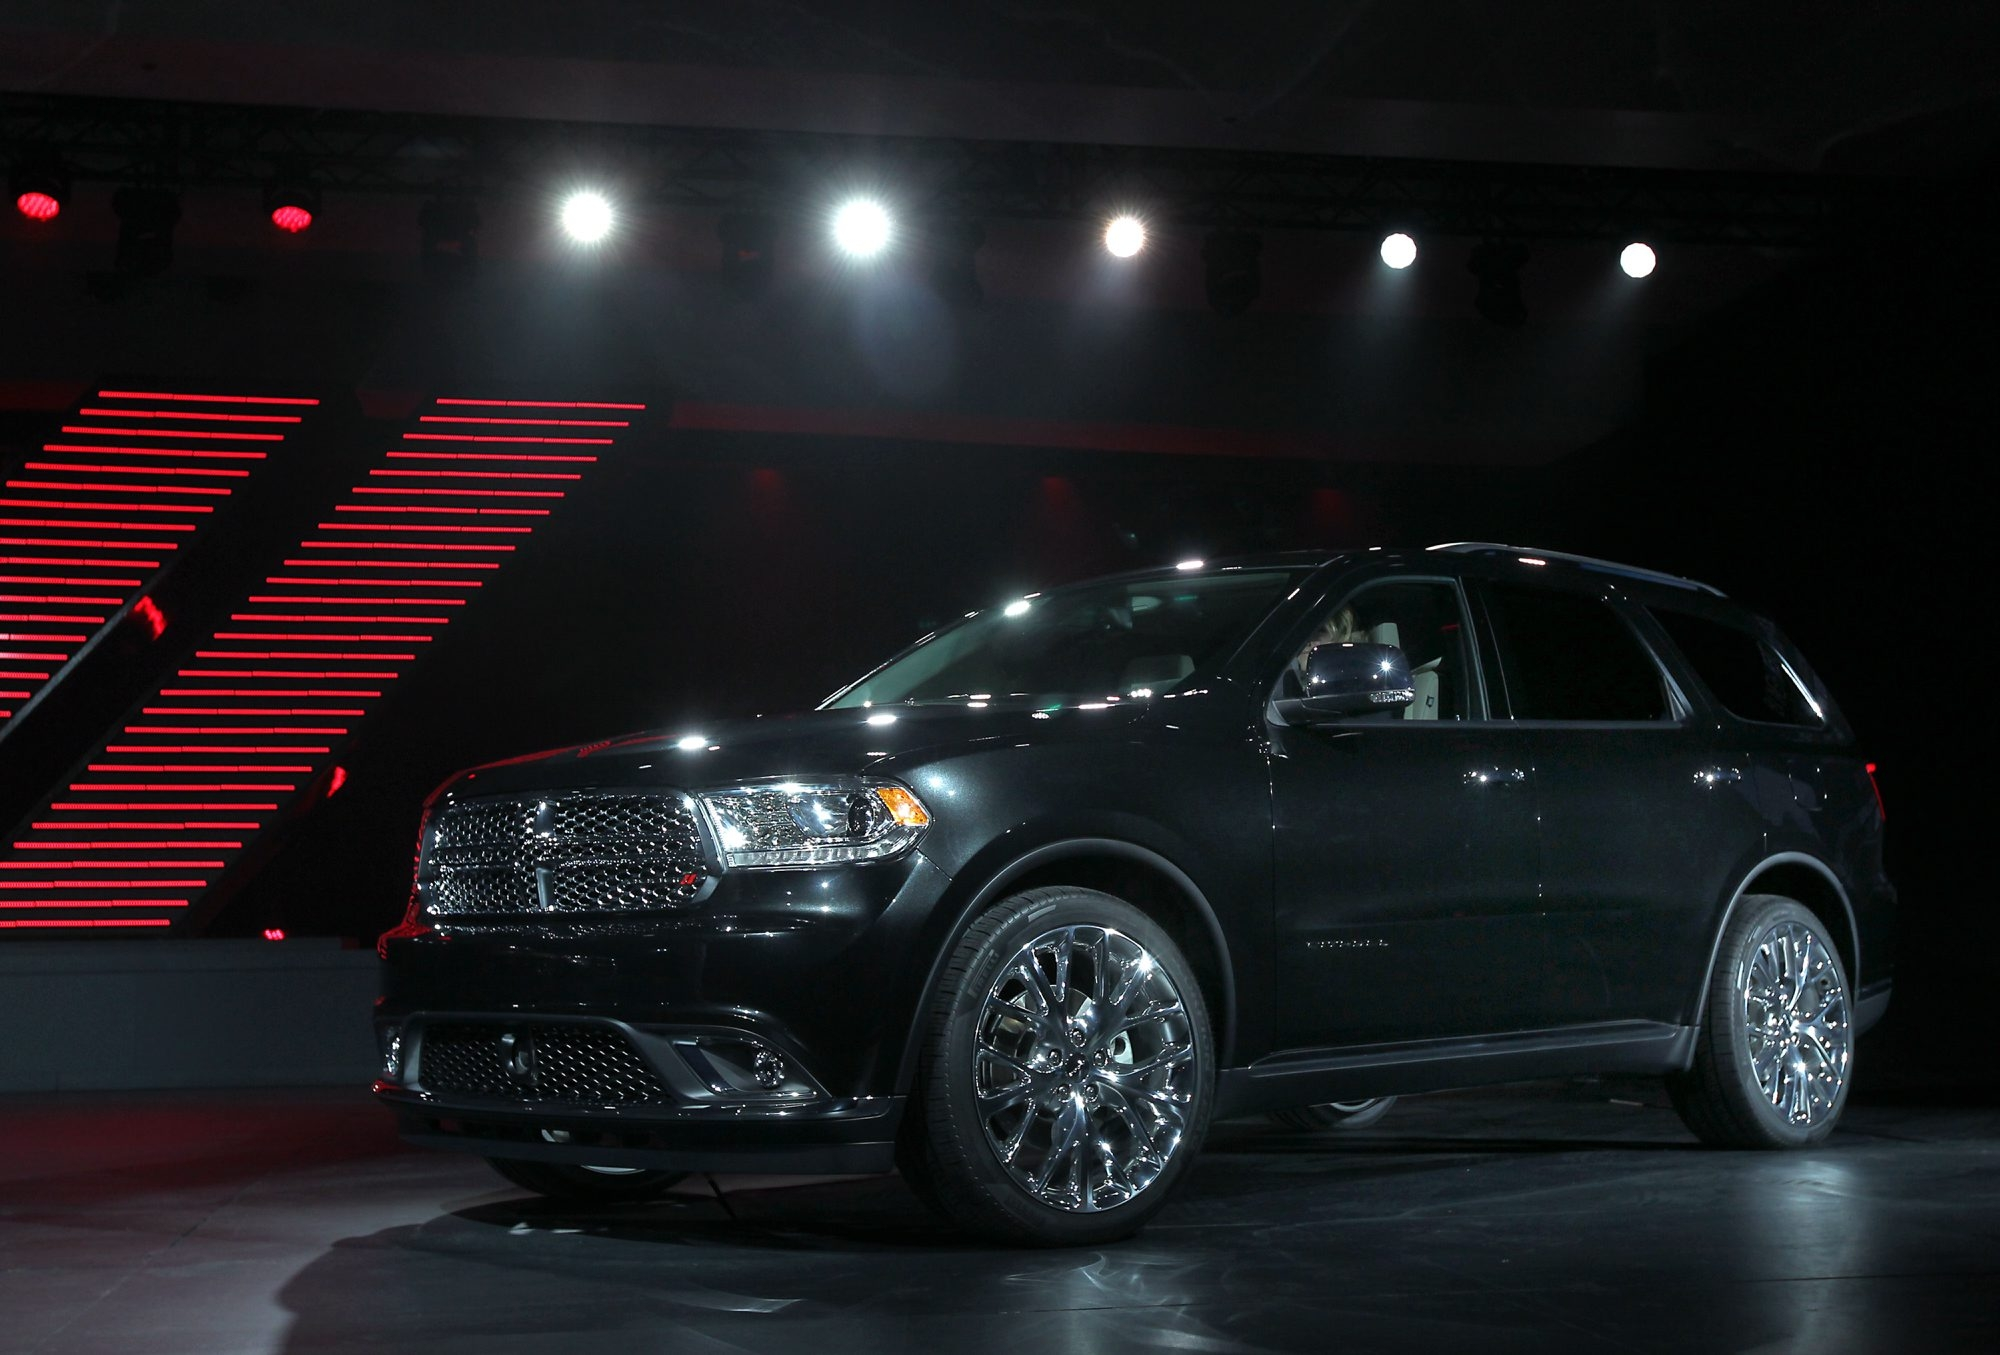 Dodge Durango sport utility vehicles from 2011-14, along with Jeep Grand Cherokees, were recalled last year because of fires from short circuits in sun visors. Since then, there have been further complaints.